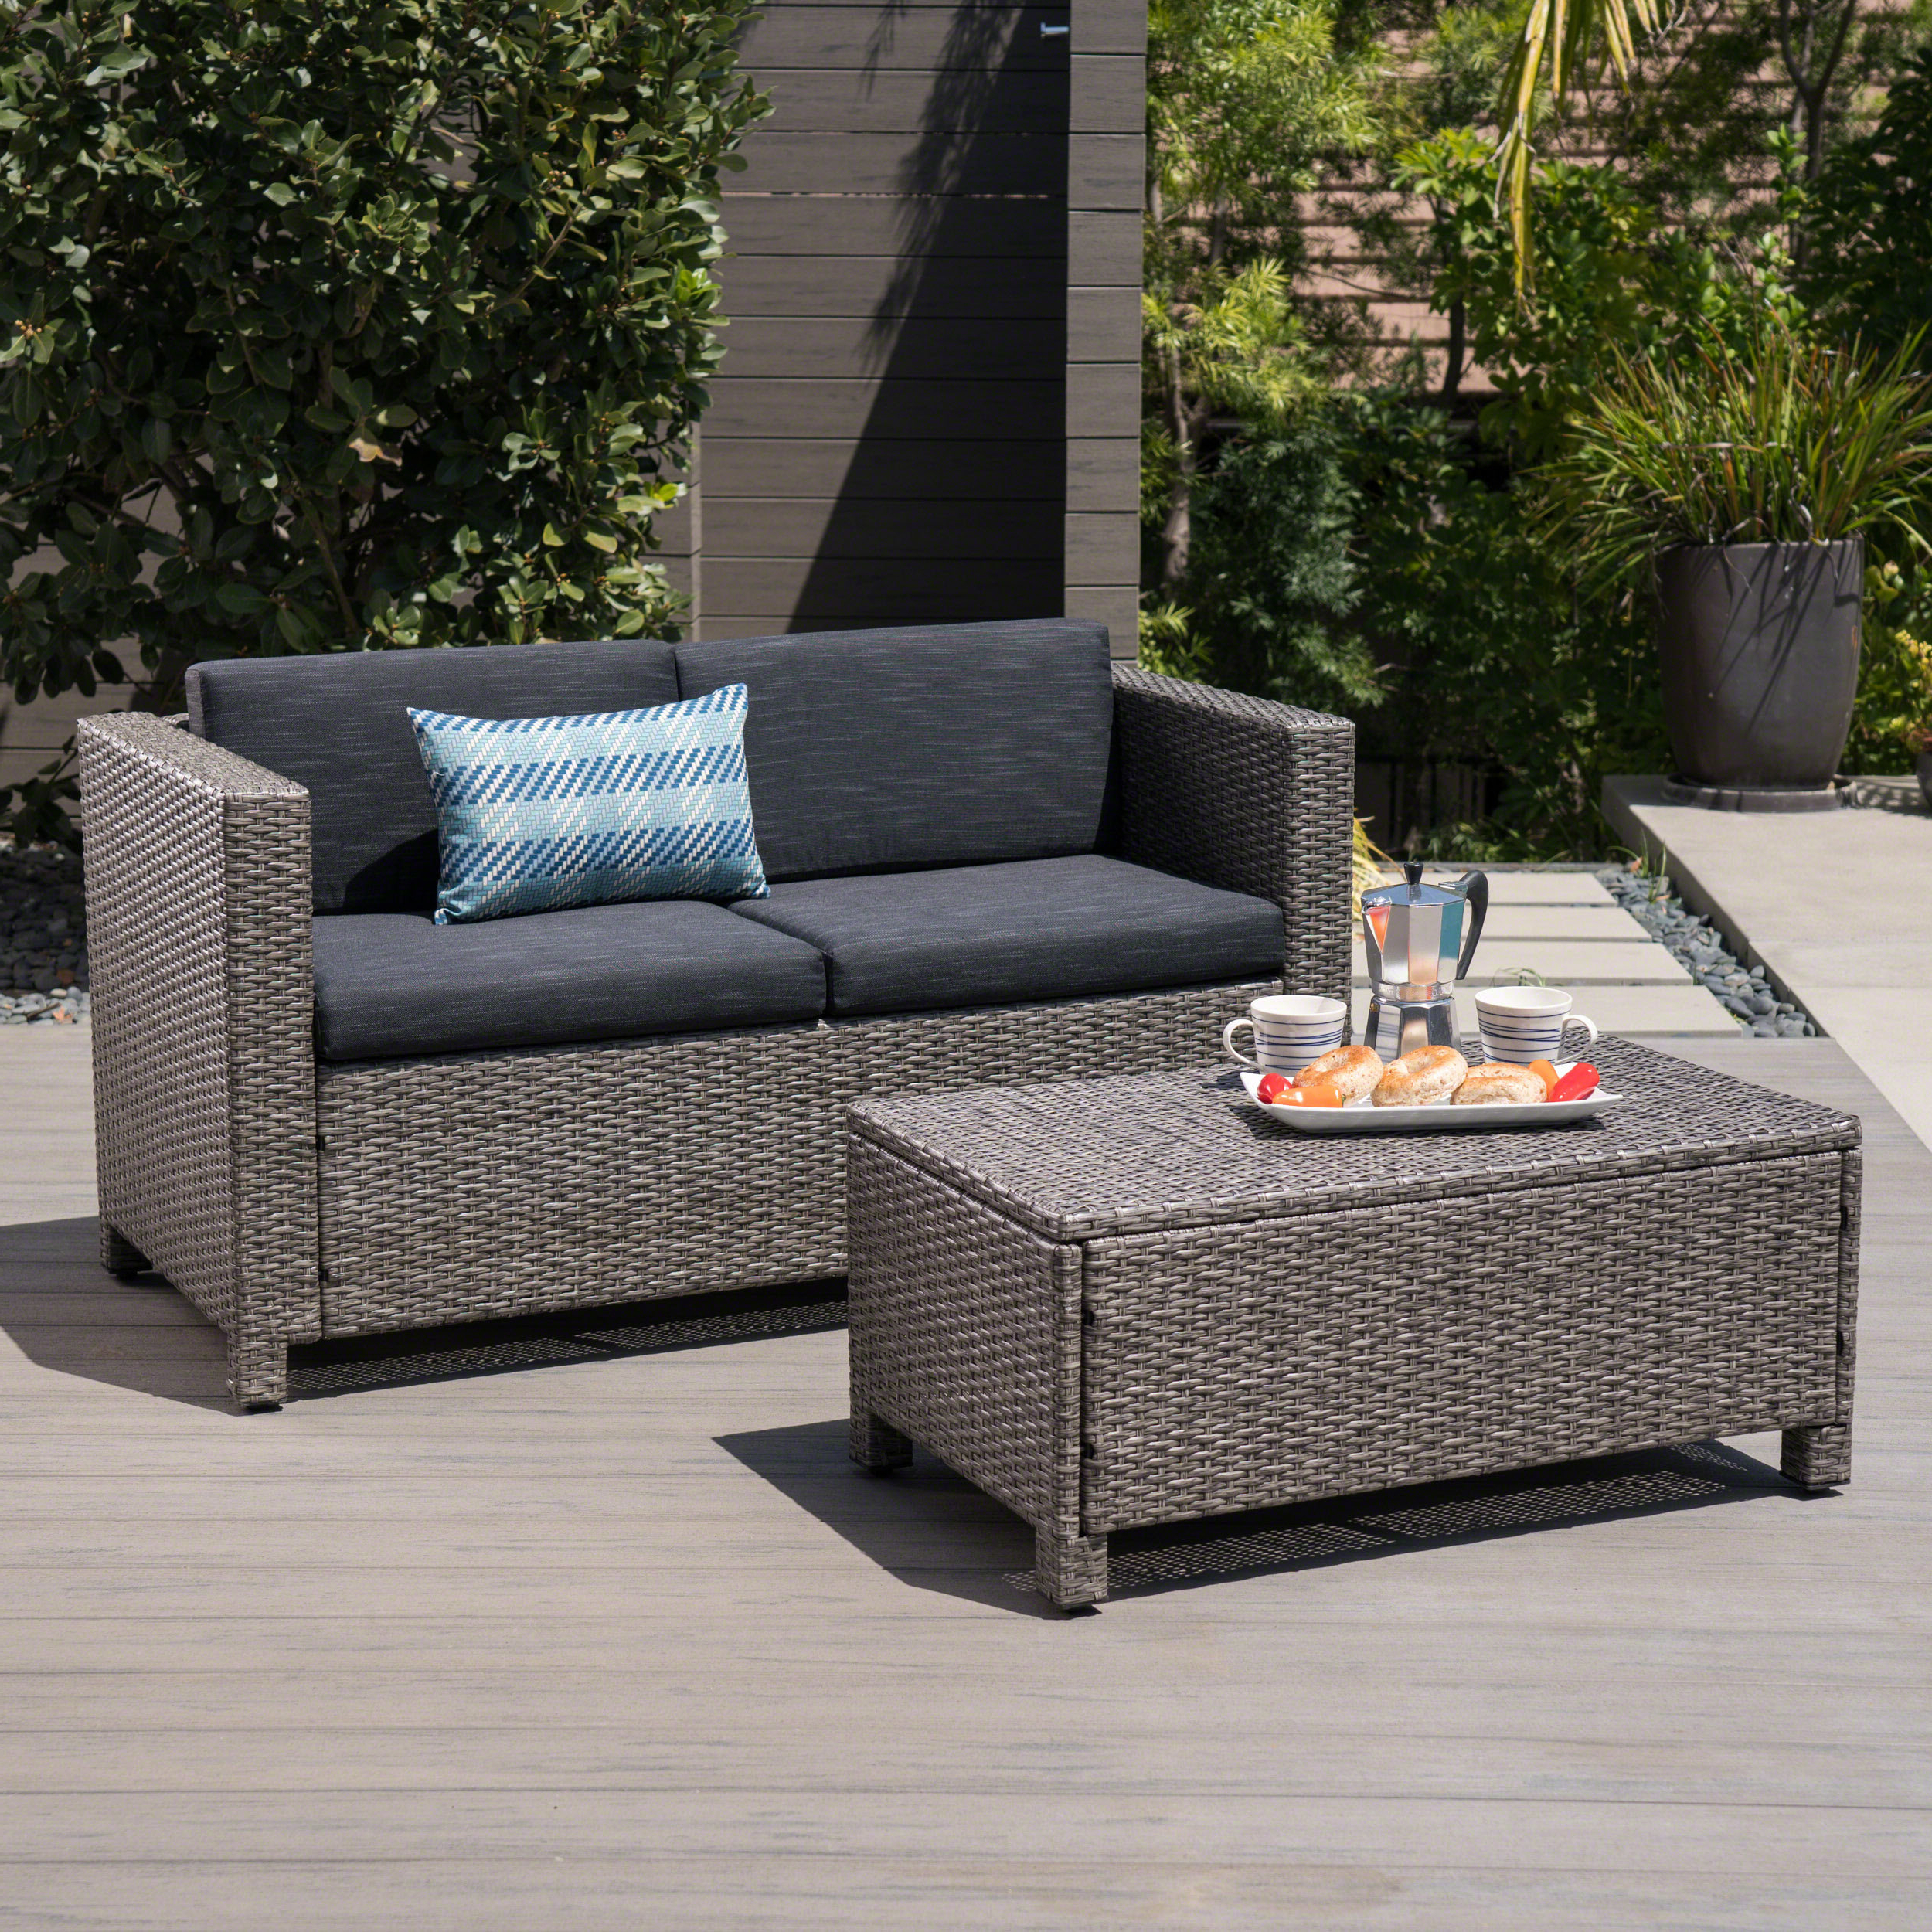 Famous Furst Patio Sofas With Cushion Pertaining To Furst Outdoor Rattan Loveseat And Table Set With Cushions (View 2 of 20)